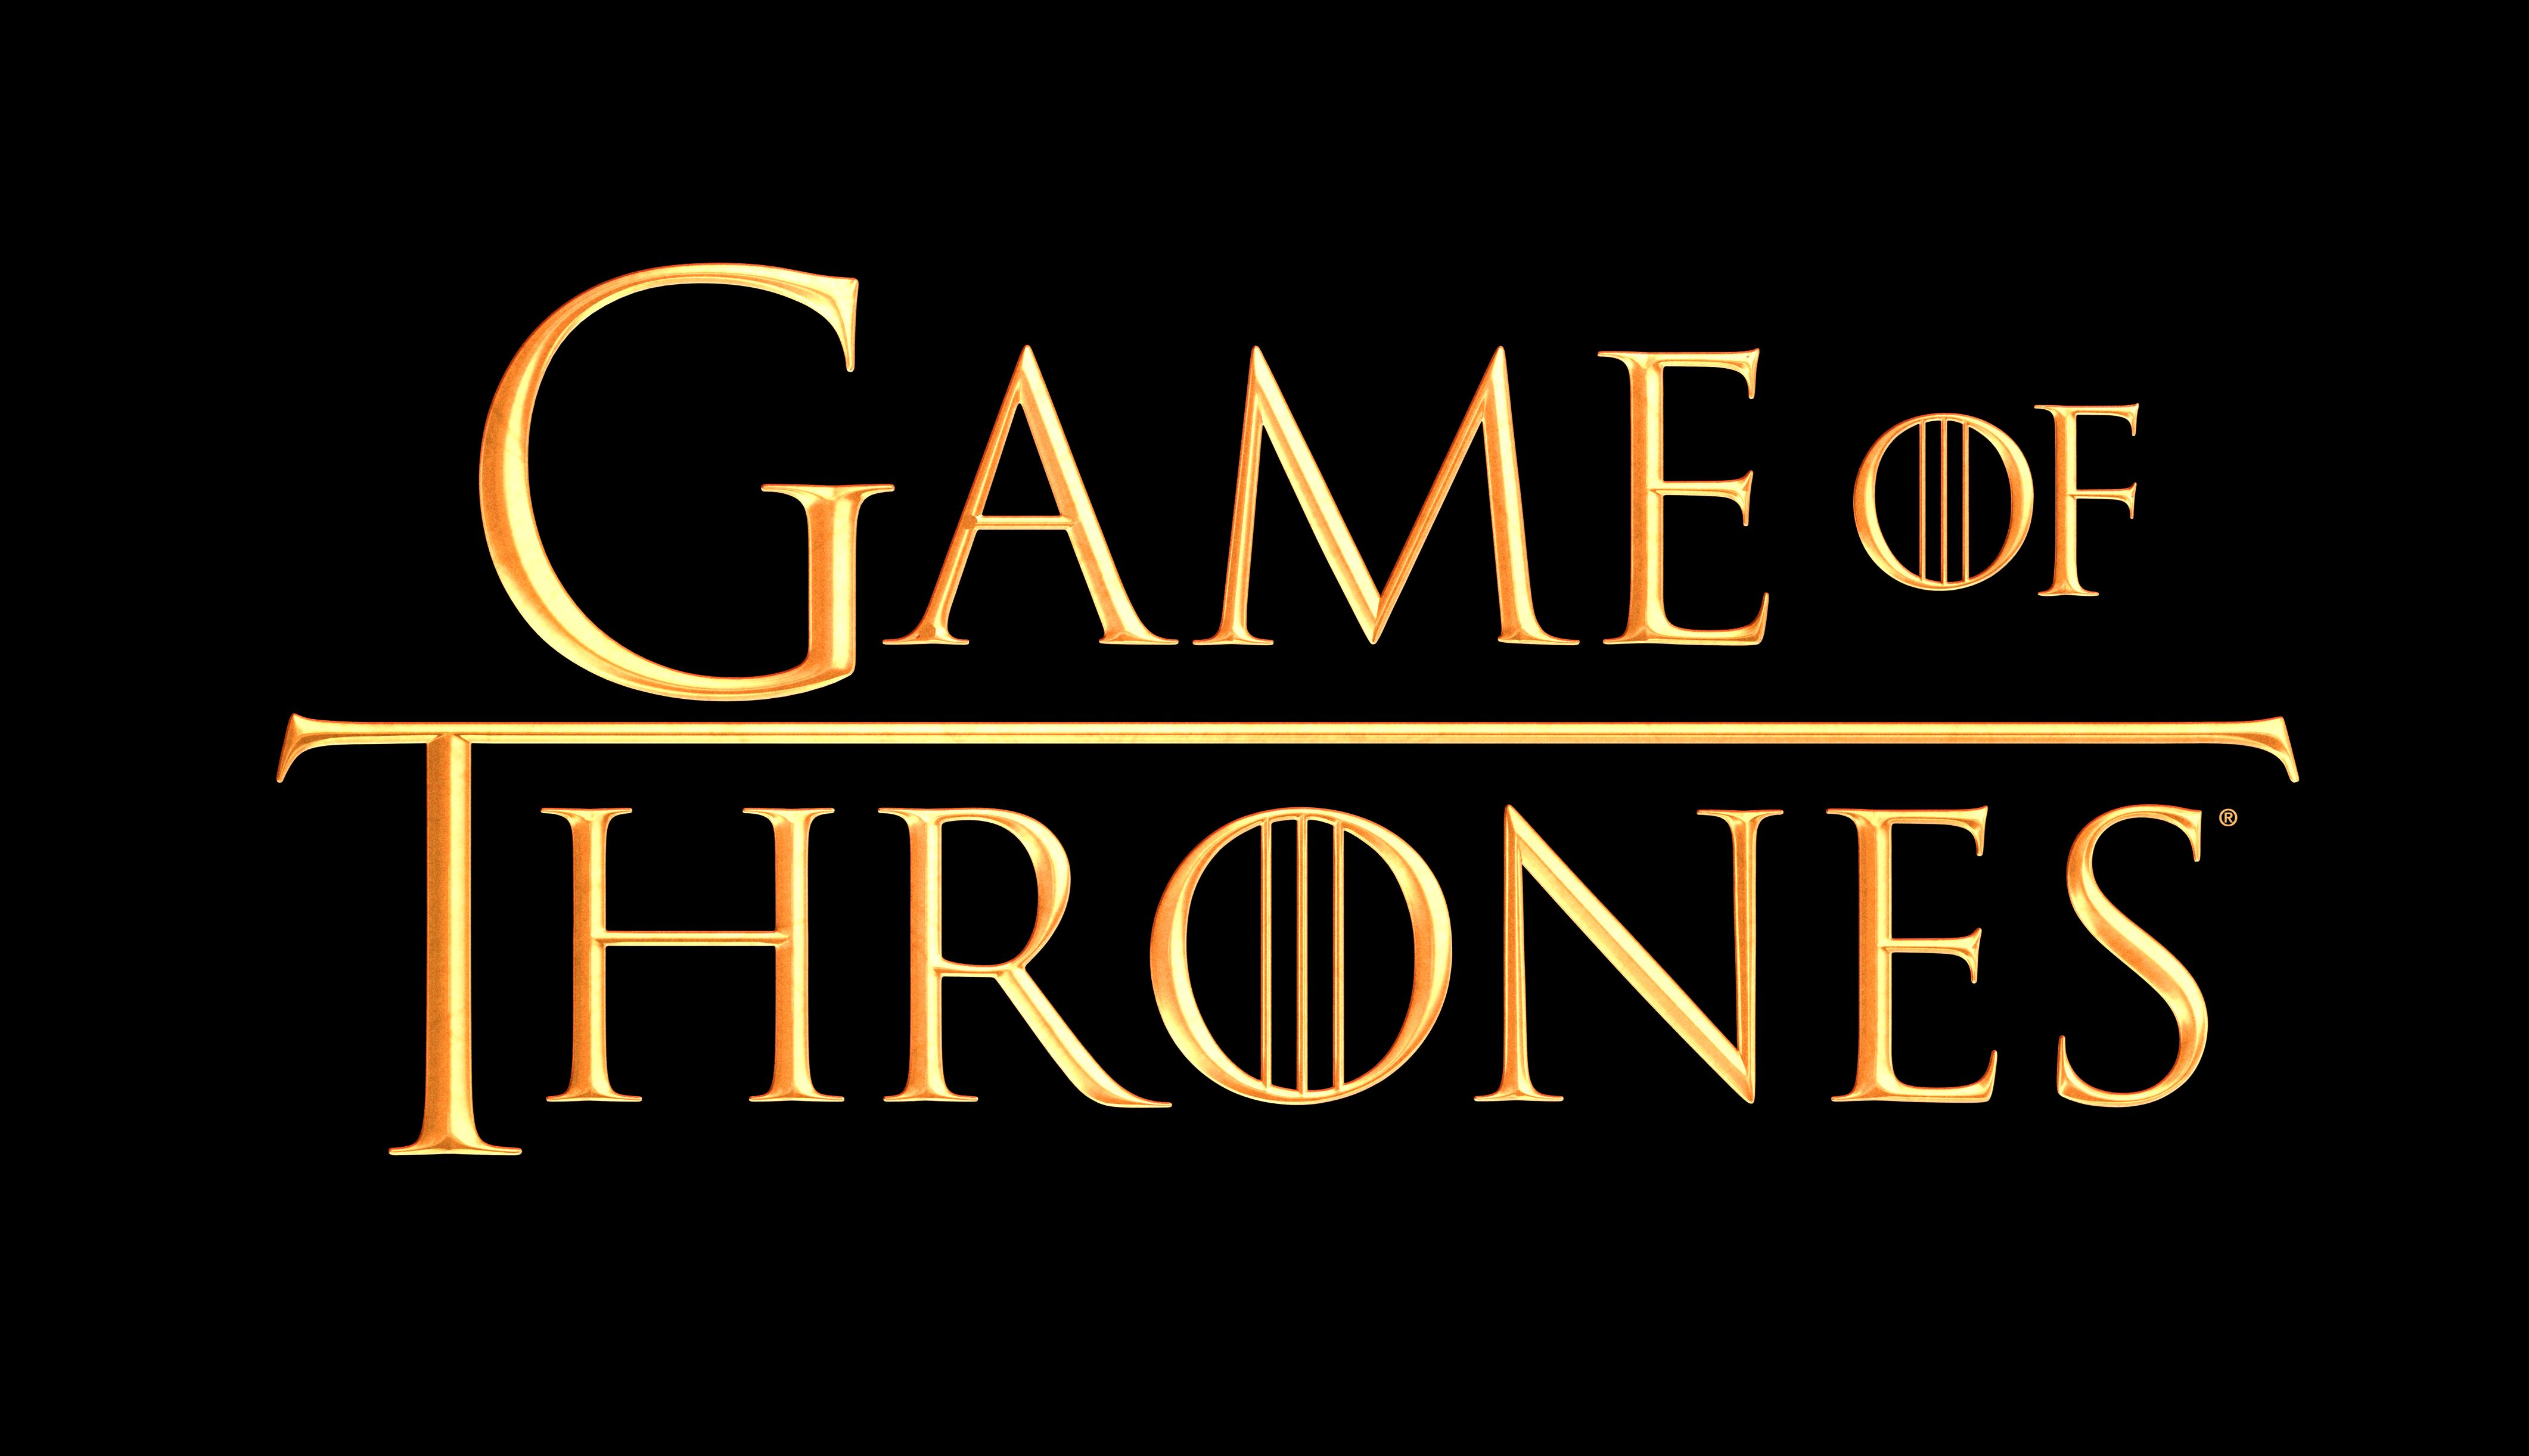 Game Of Thrones Logo Vector PNG-PlusPNG.com-4244 - Game Of Thrones Logo Vector PNG